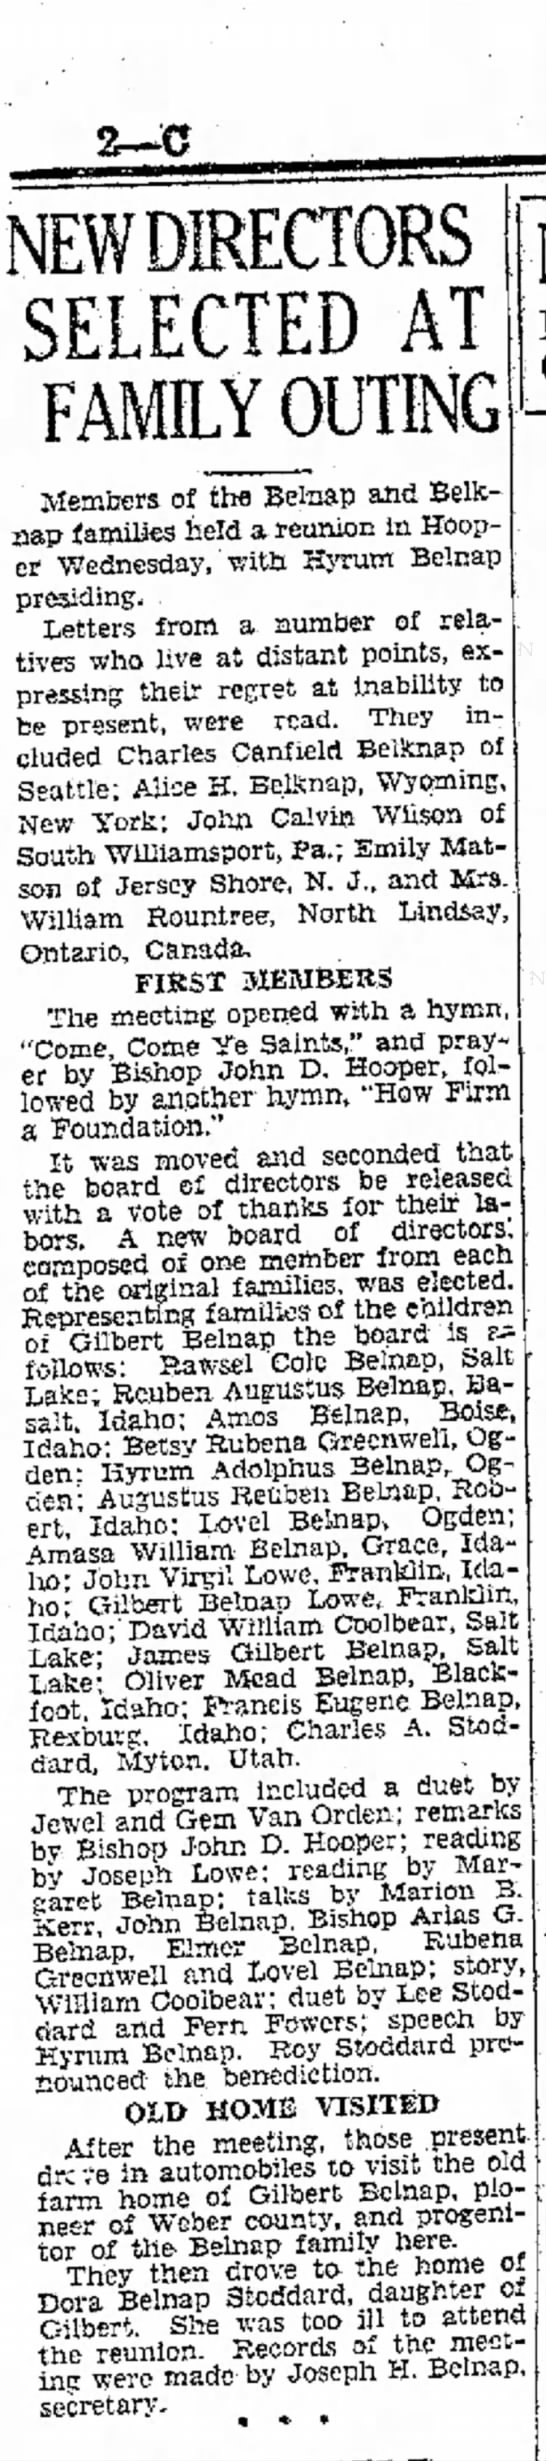 1930 Belnap Reunion - DIRECTORS SELECTED AT FAMILY OUTING Members of...